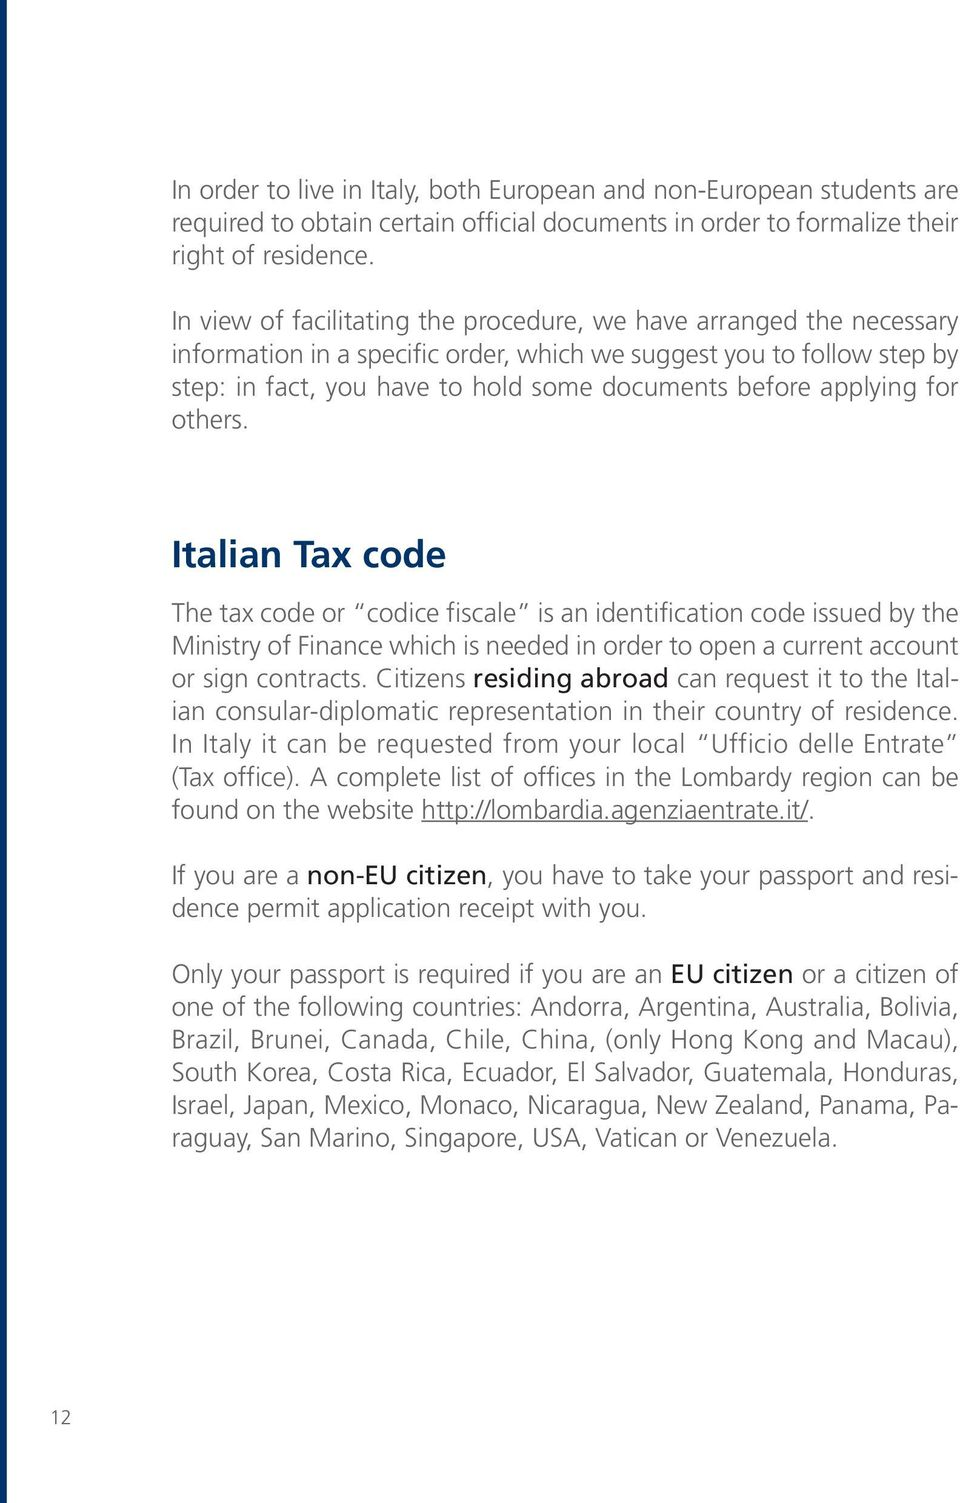 applying for others. Italian Tax code The tax code or codice fiscale is an identification code issued by the Ministry of Finance which is needed in order to open a current account or sign contracts.